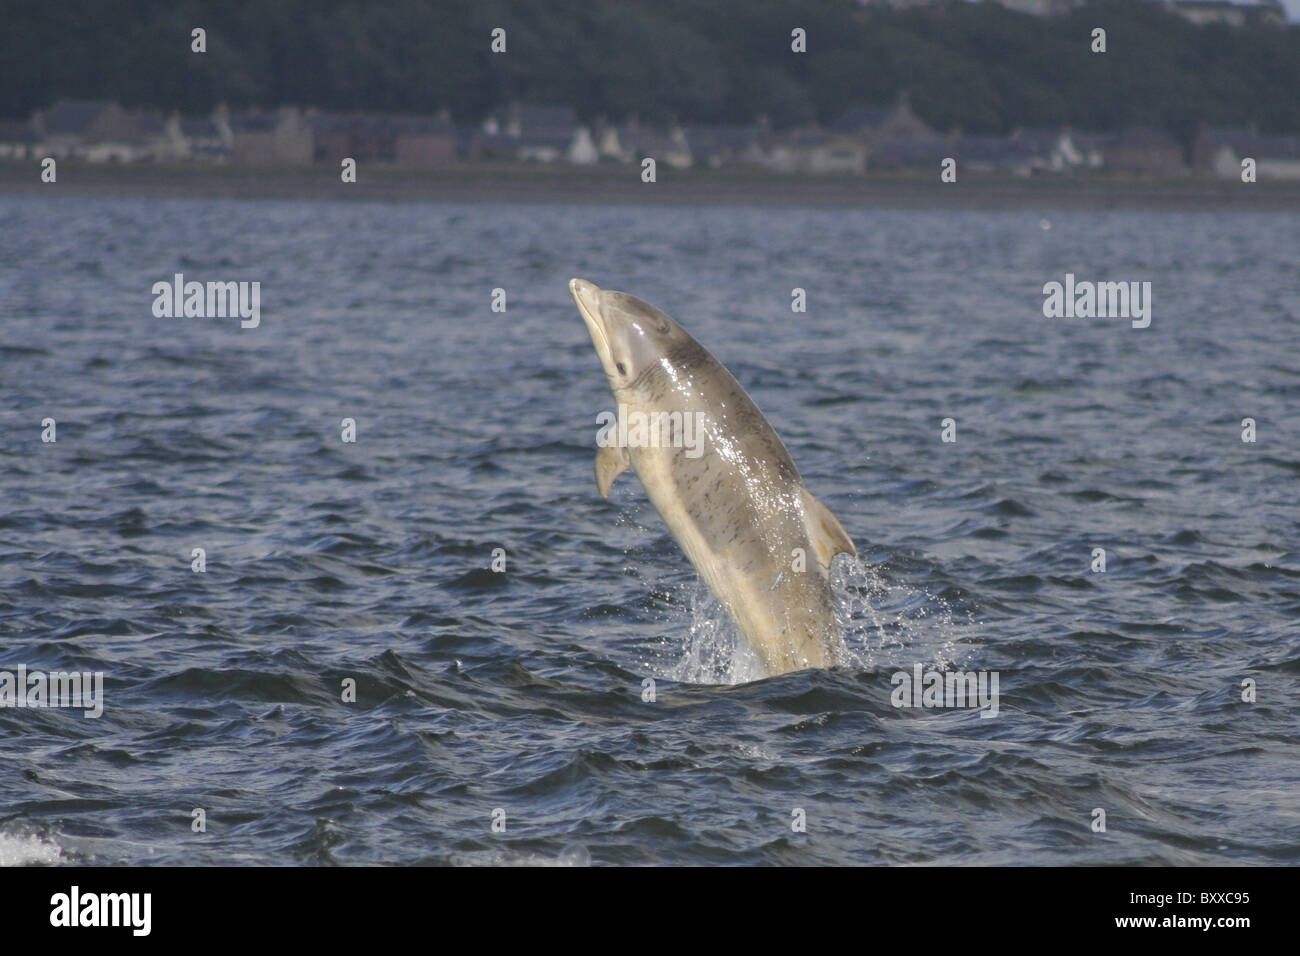 Young Bottlenose Dolphin (Tursiops truncatus) breaching in the Moray Firth, Scotland, UK - Stock Image